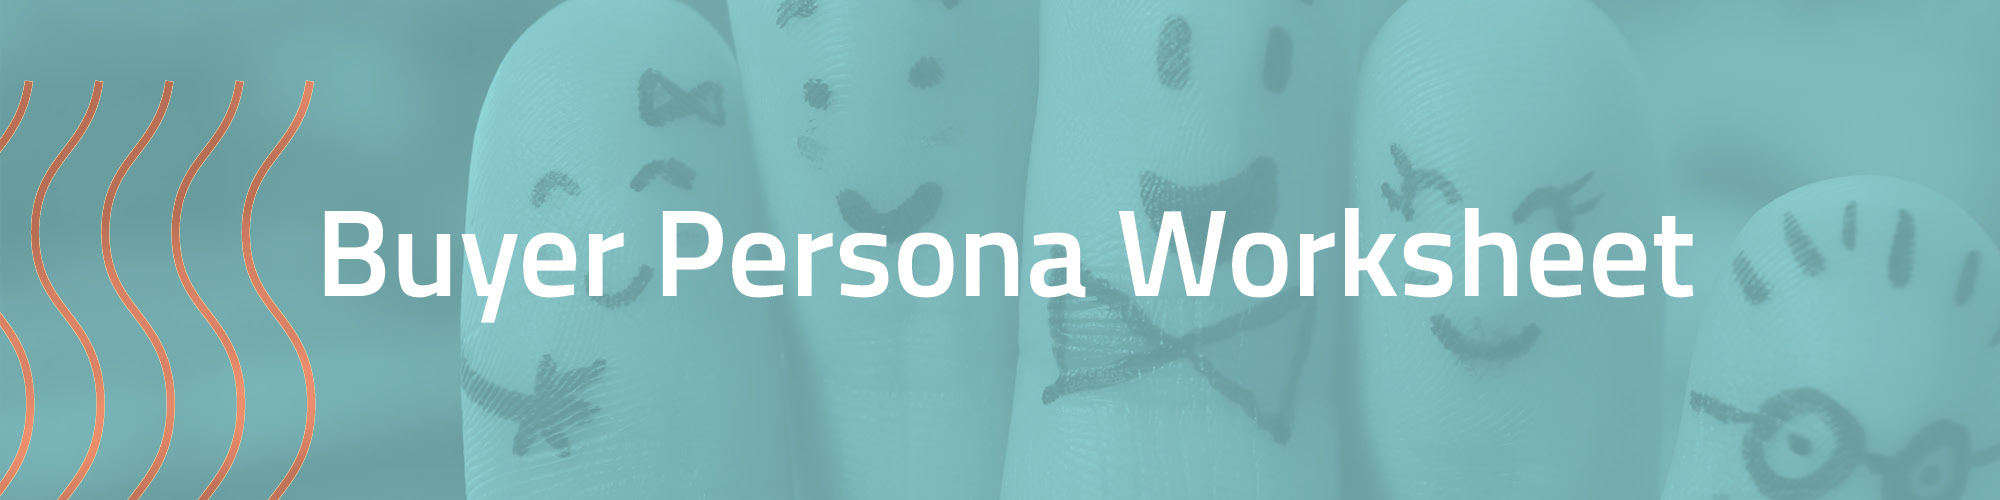 Buyer Persona Worksheet_Header.jpg